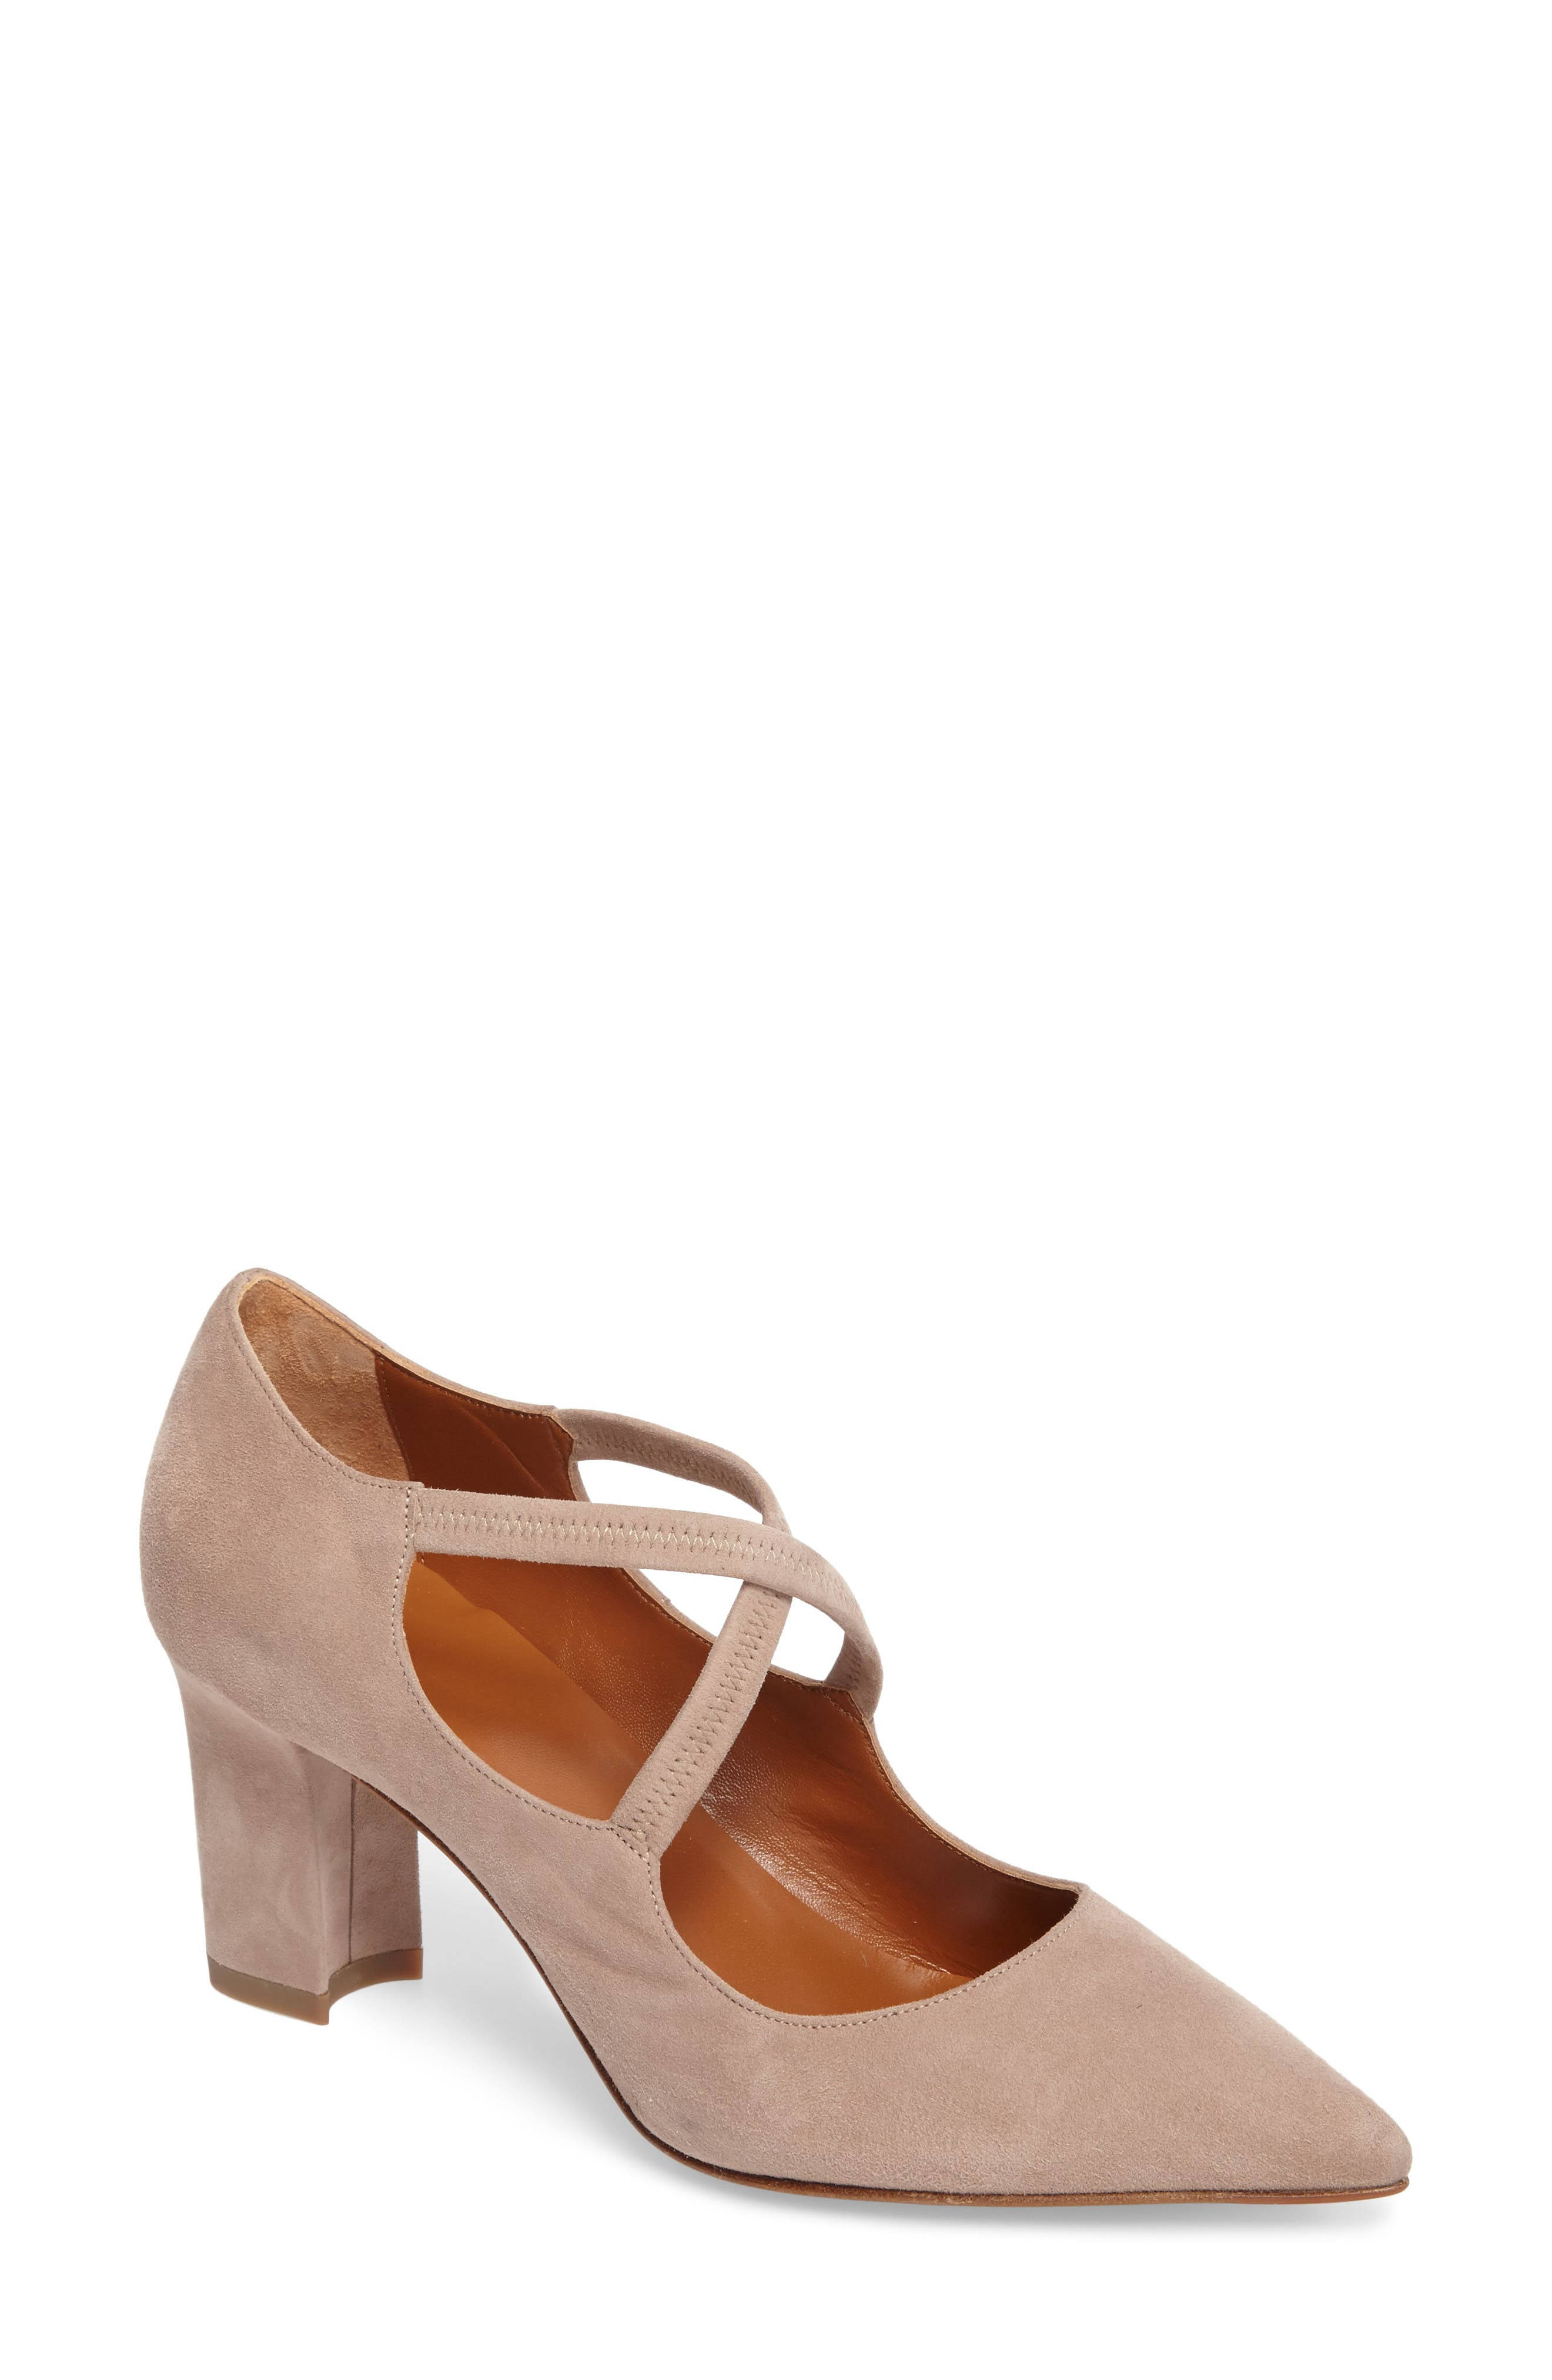 Alternate Image 1 Selected - Aquatalia Madeline Weatherproof Pump (Women)